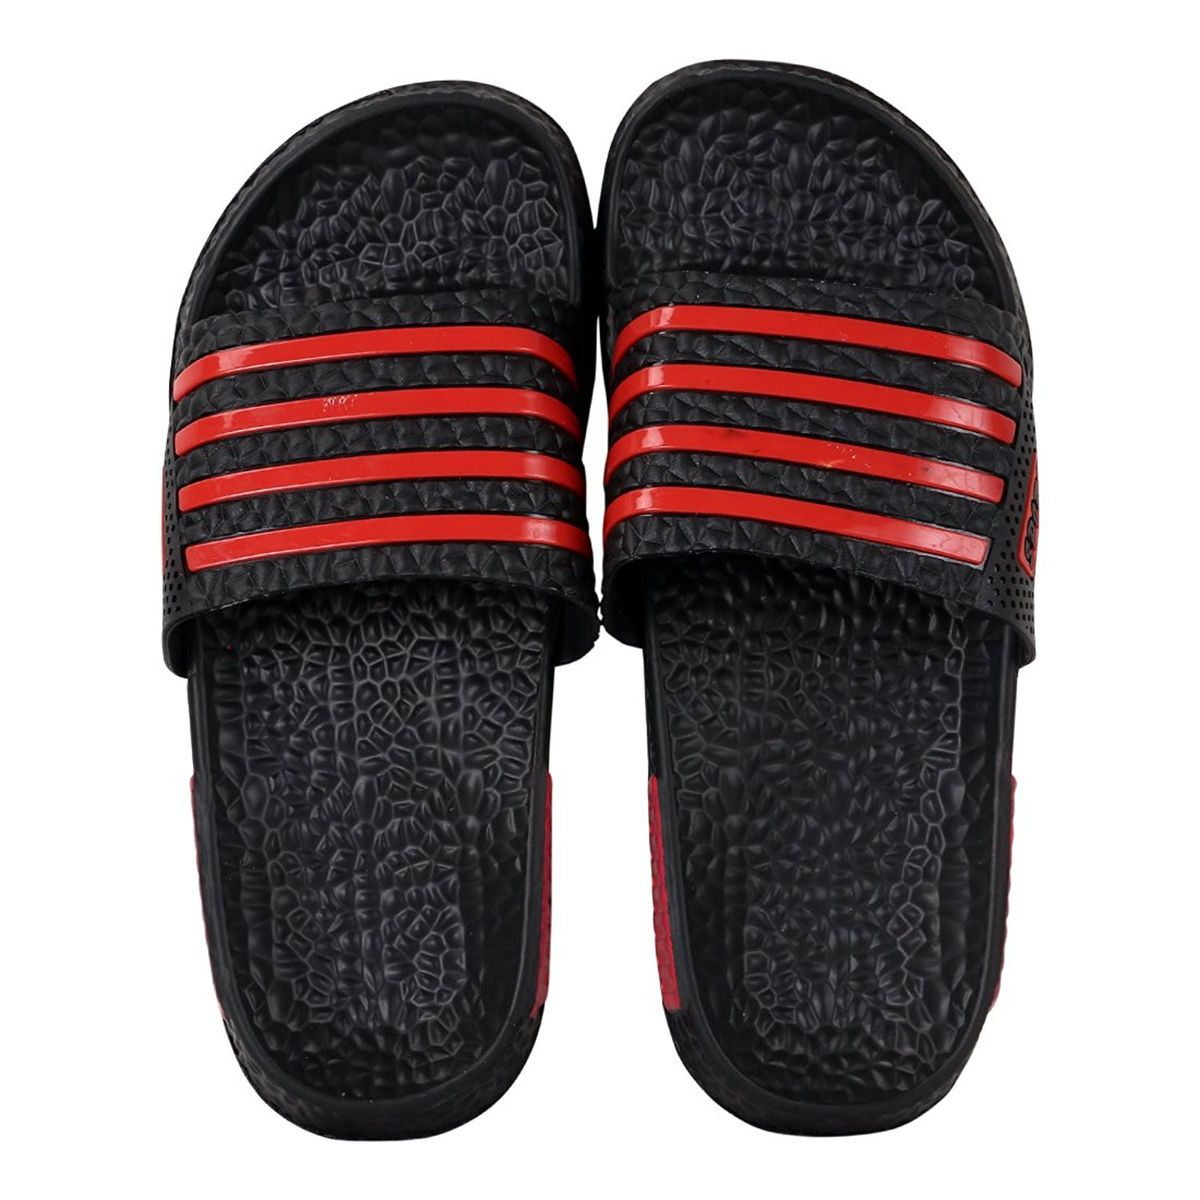 Falcon18 Black Slippers 2015 sale online cheap sale get to buy GfjAw5R6n